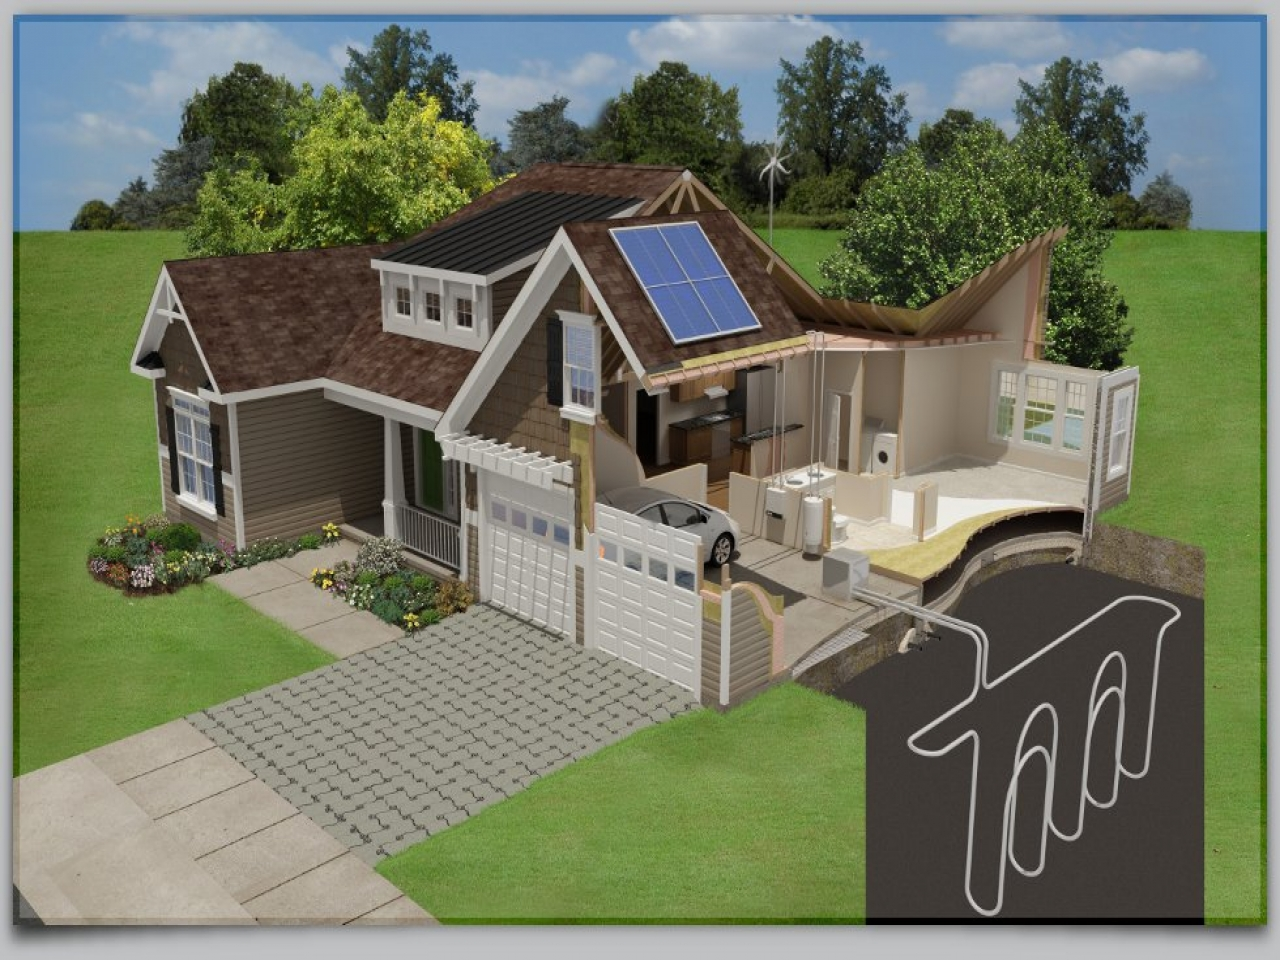 Energy efficient home designs plans energy efficient home for Economical house plans to build